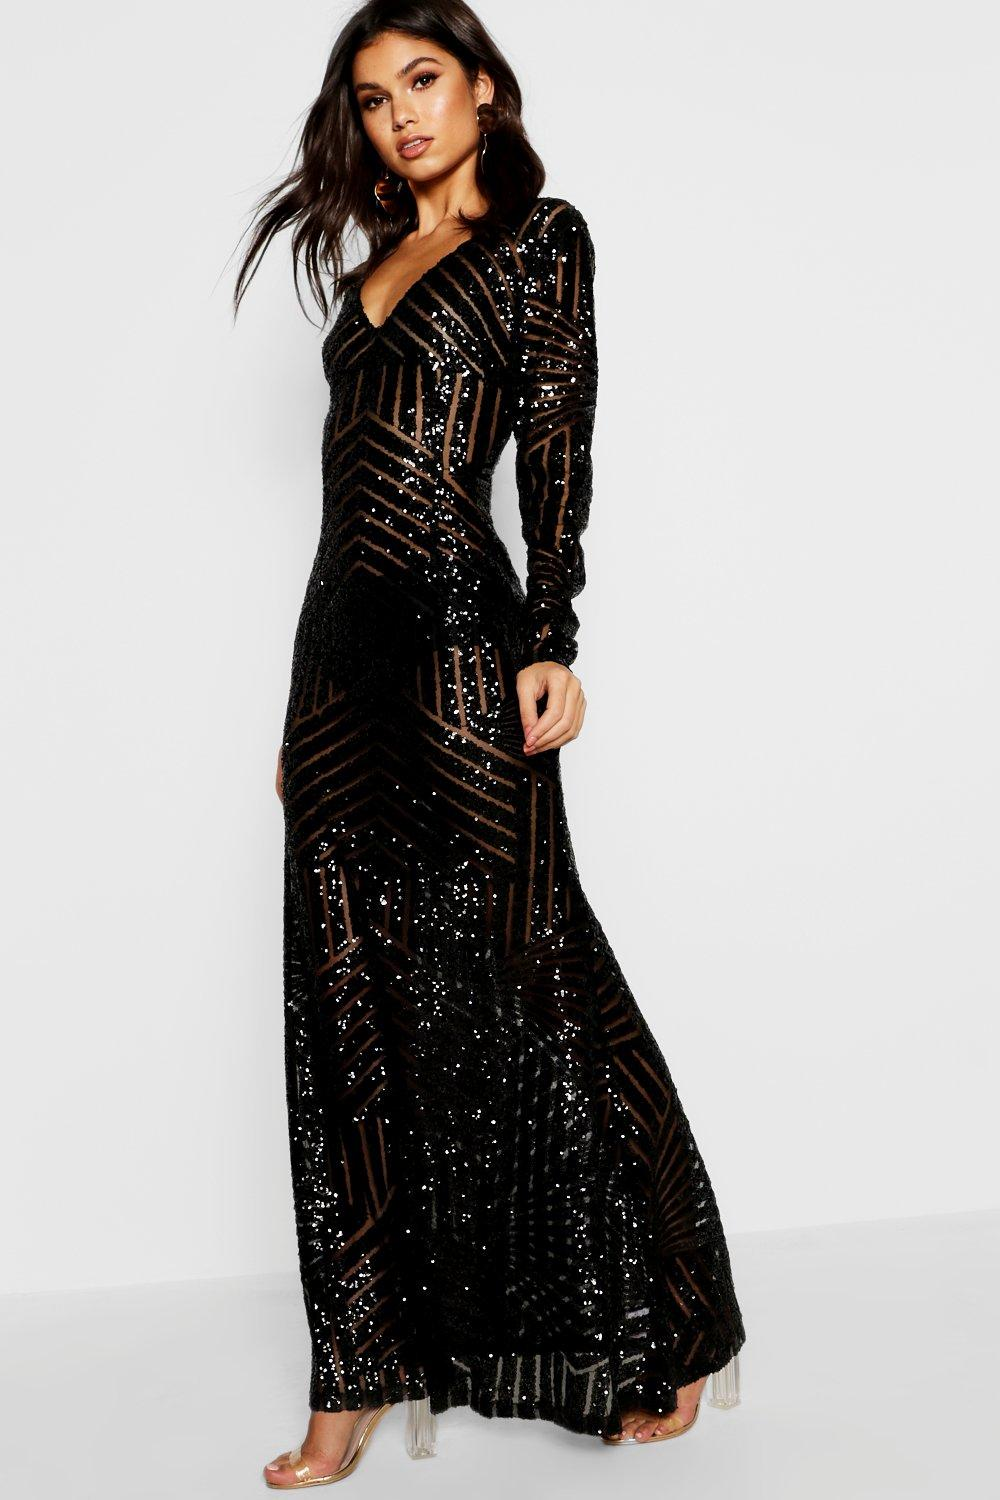 70s Prom, Formal, Evening, Party Dresses Womens Boutique Sequin  Mesh Maxi Dress - black - 12 $45.00 AT vintagedancer.com